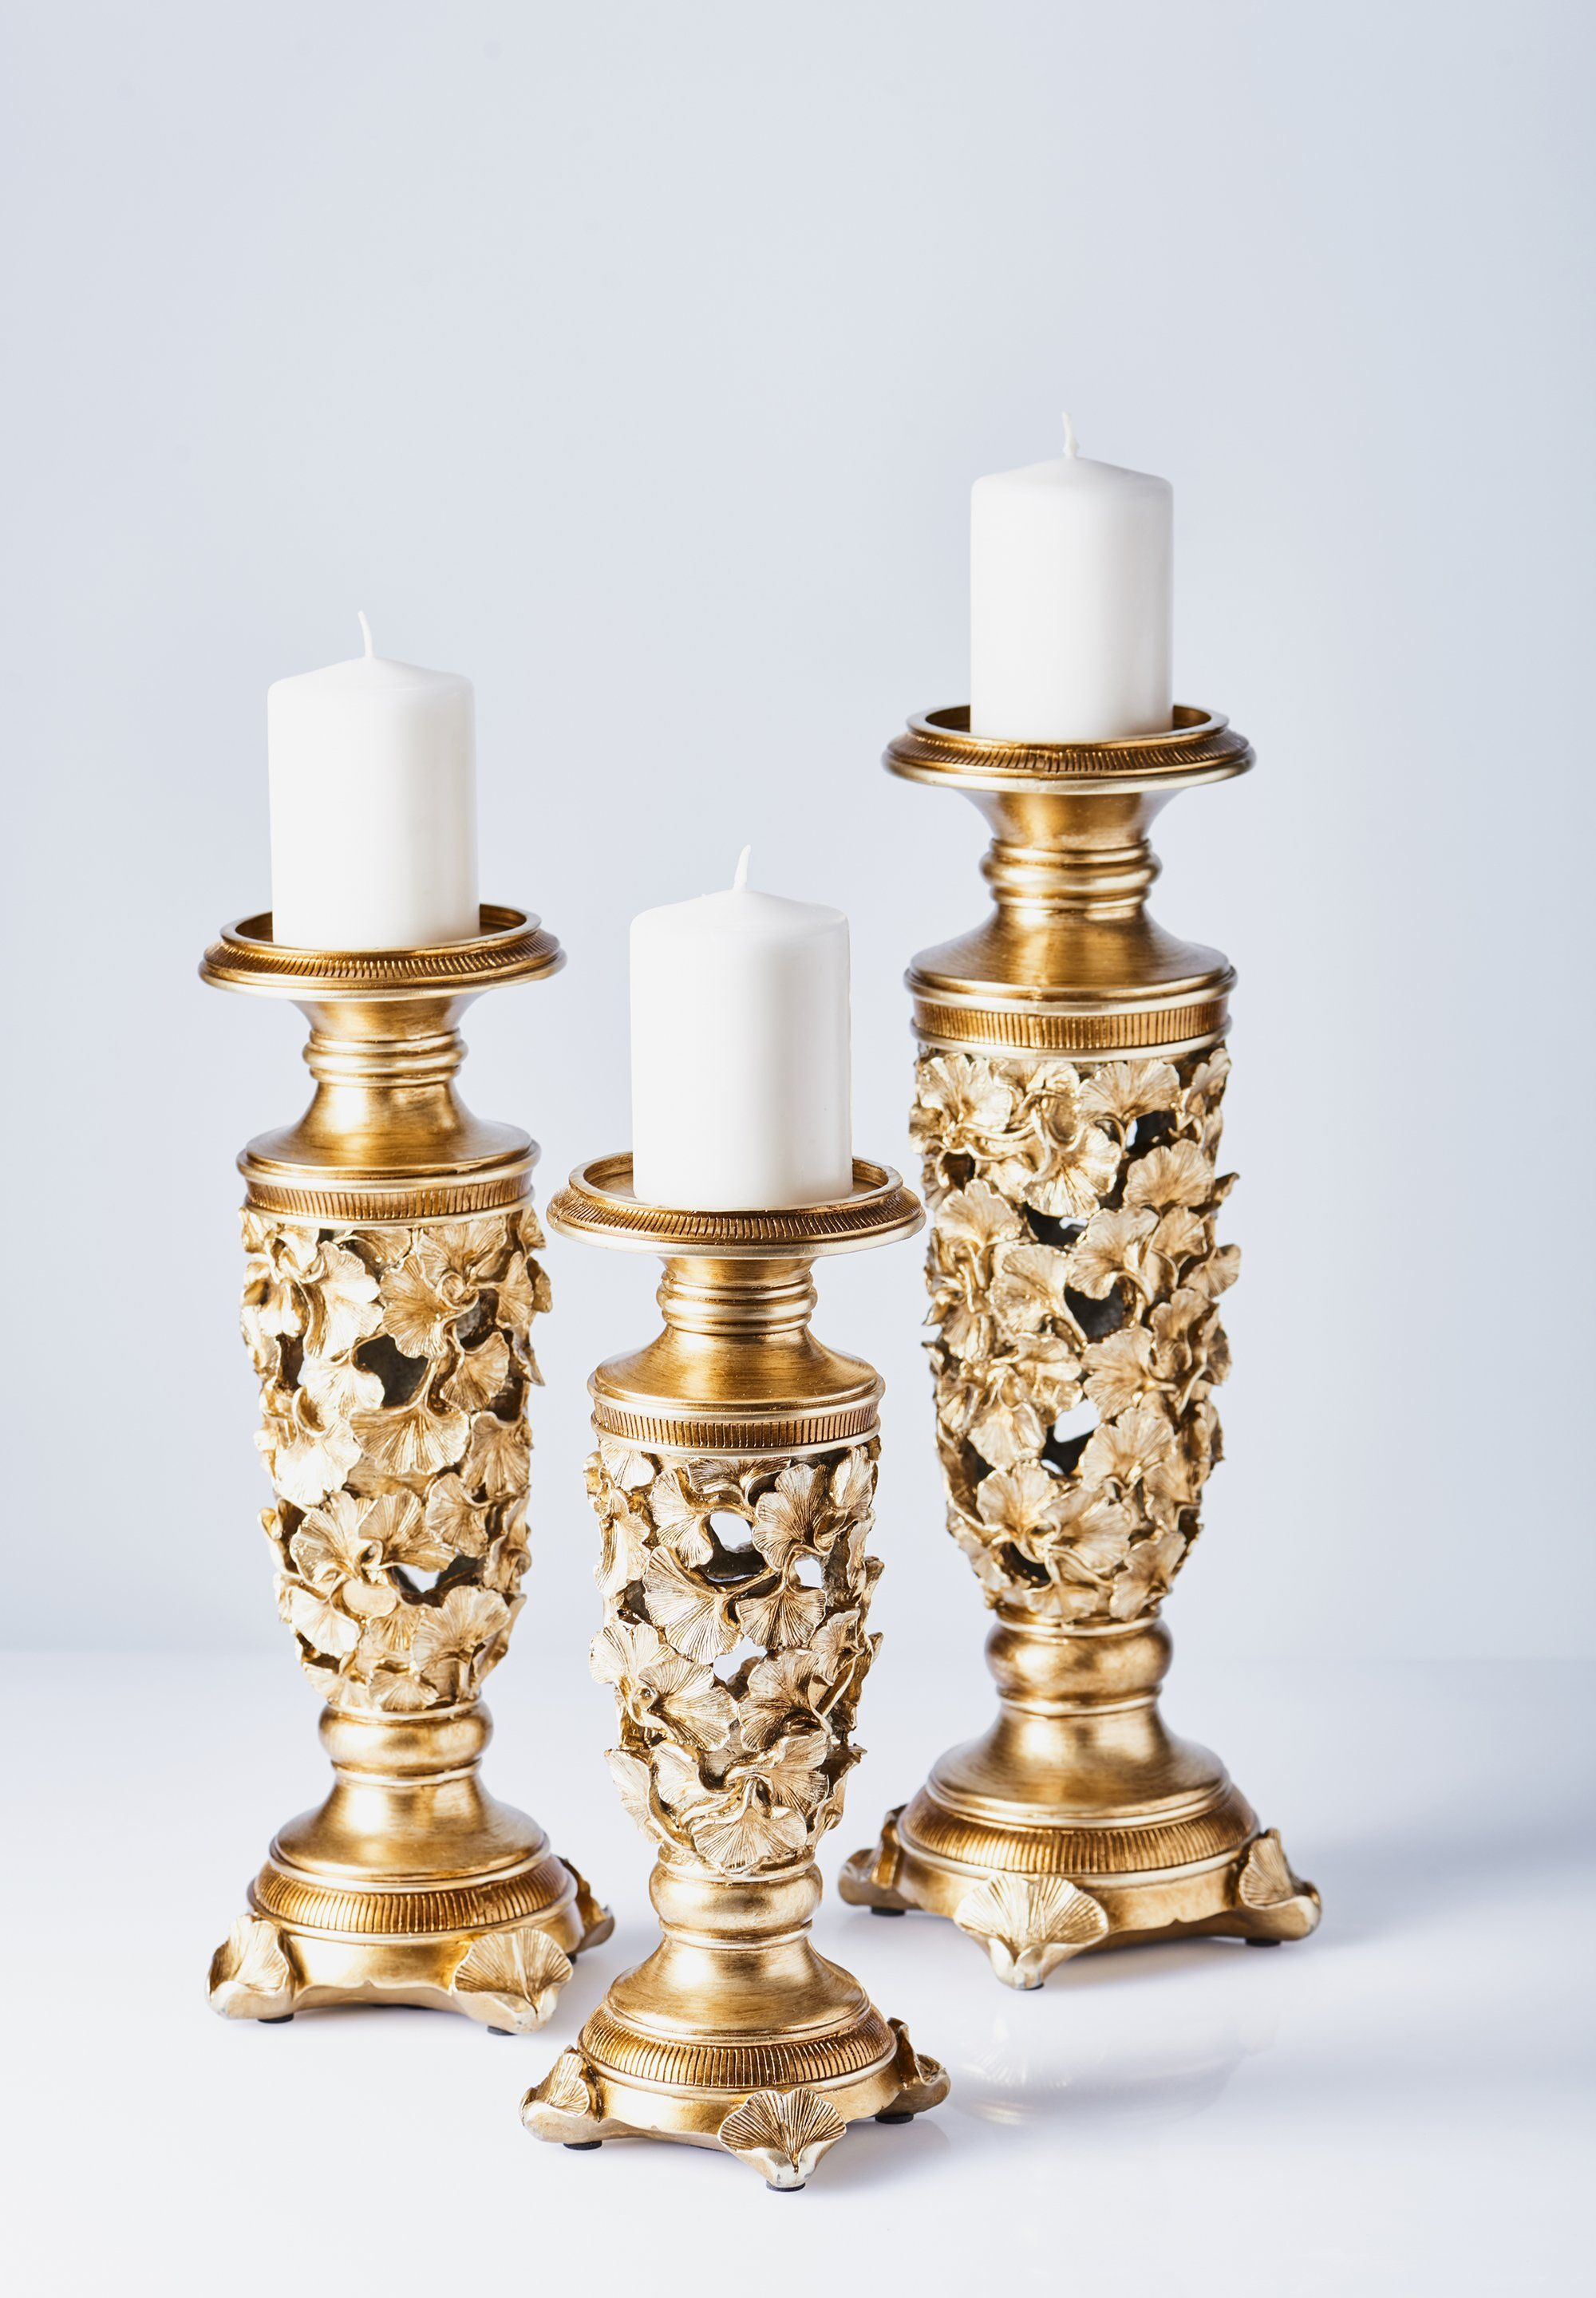 cffeb57fa9 Polyresin Candlestick 3 Piece Set | Products | Candlesticks, Candle ...